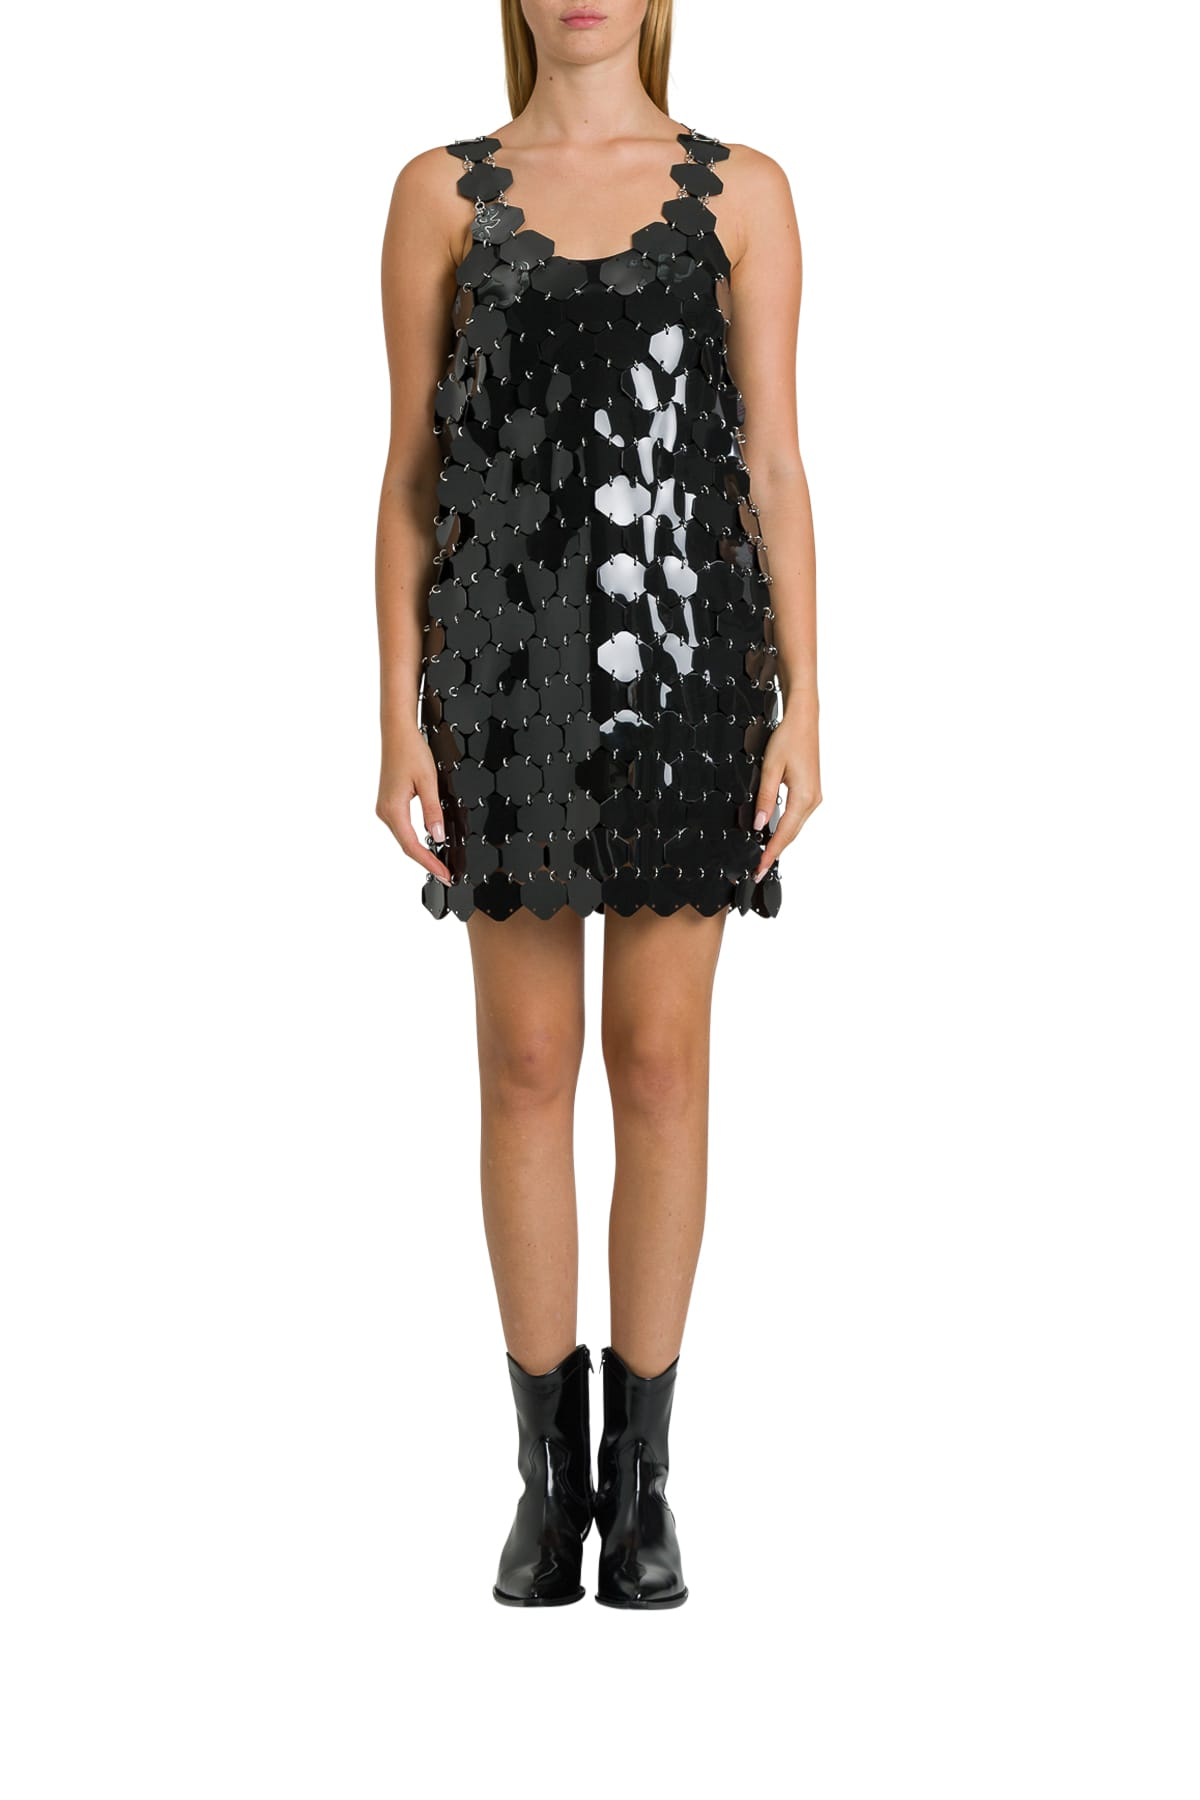 Paco Rabanne Maxi Sequins Minidress